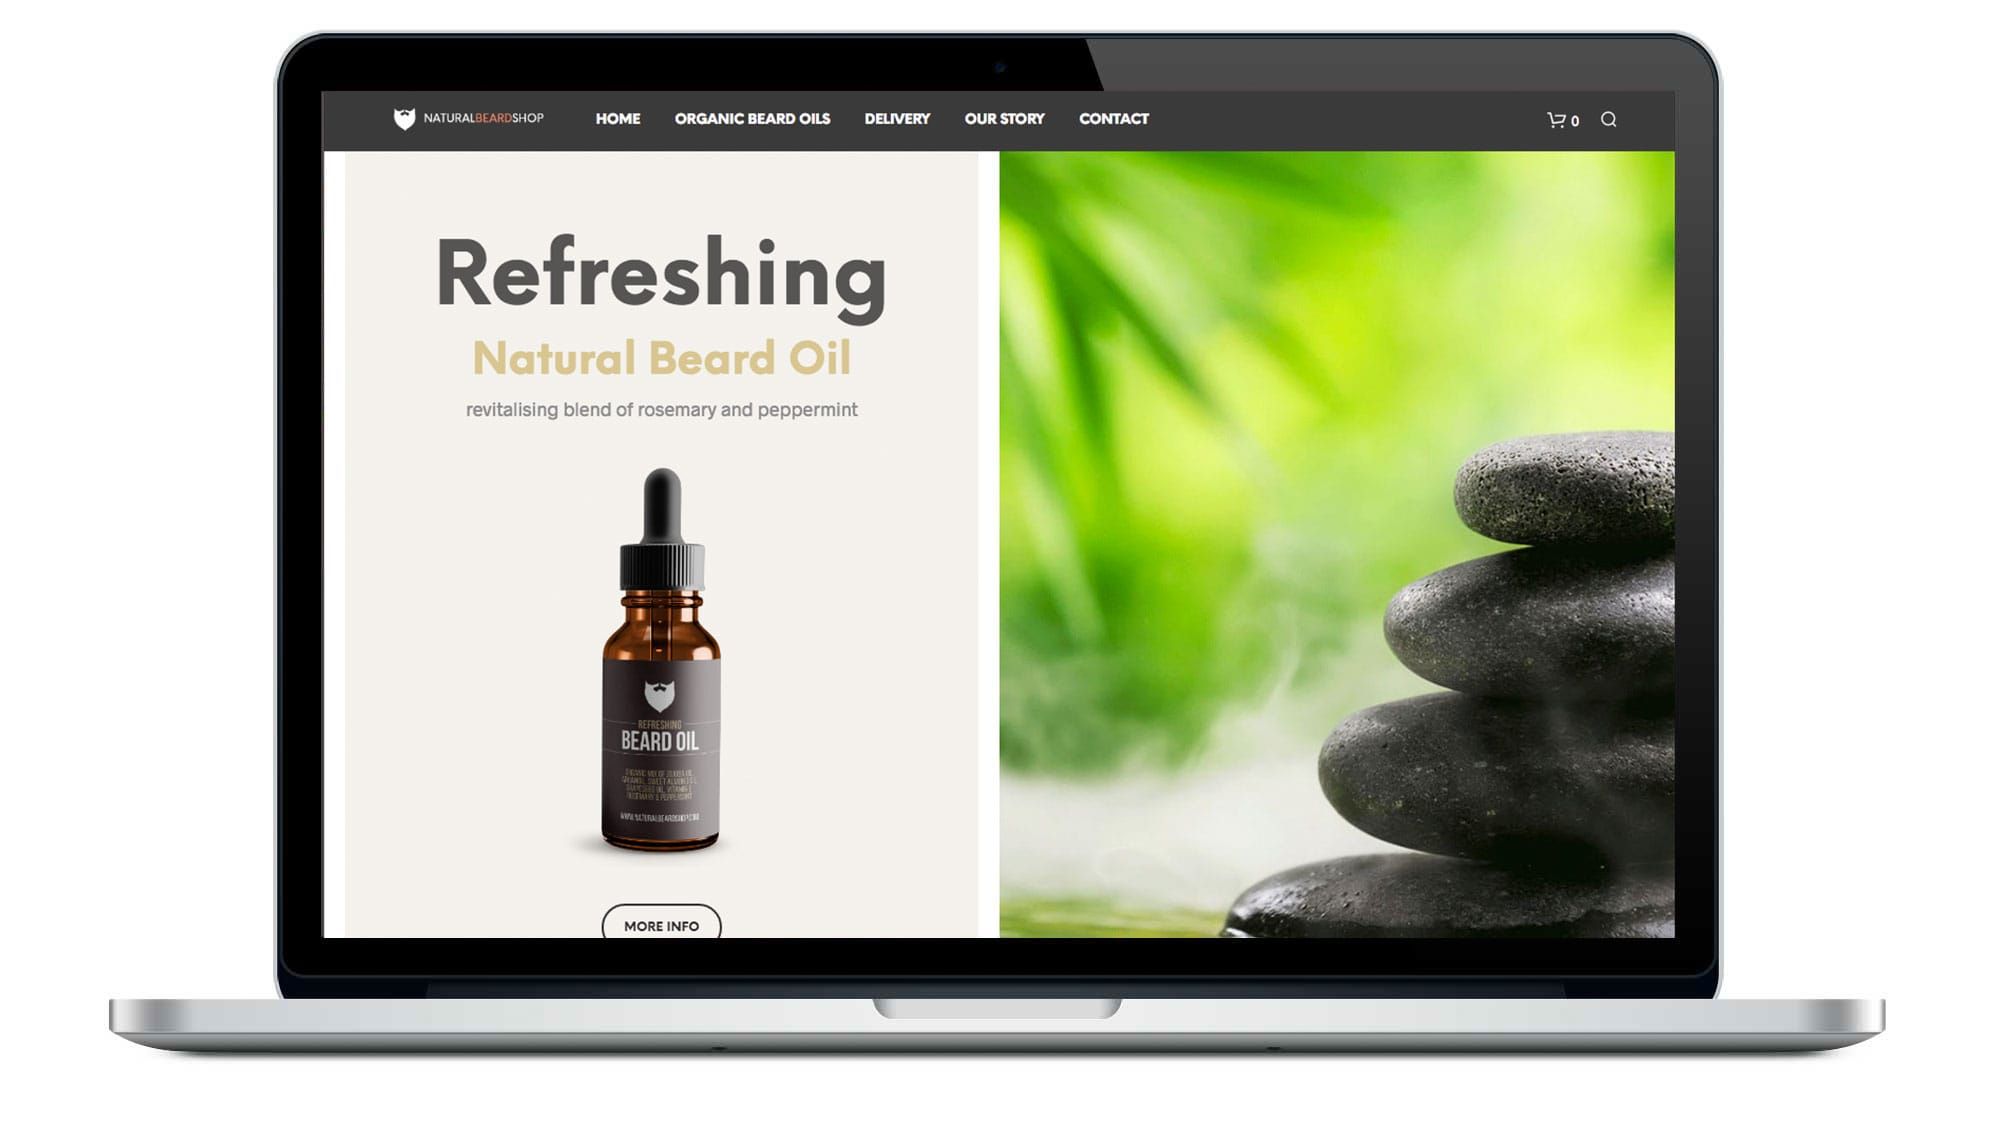 Natural Beard Shop Website